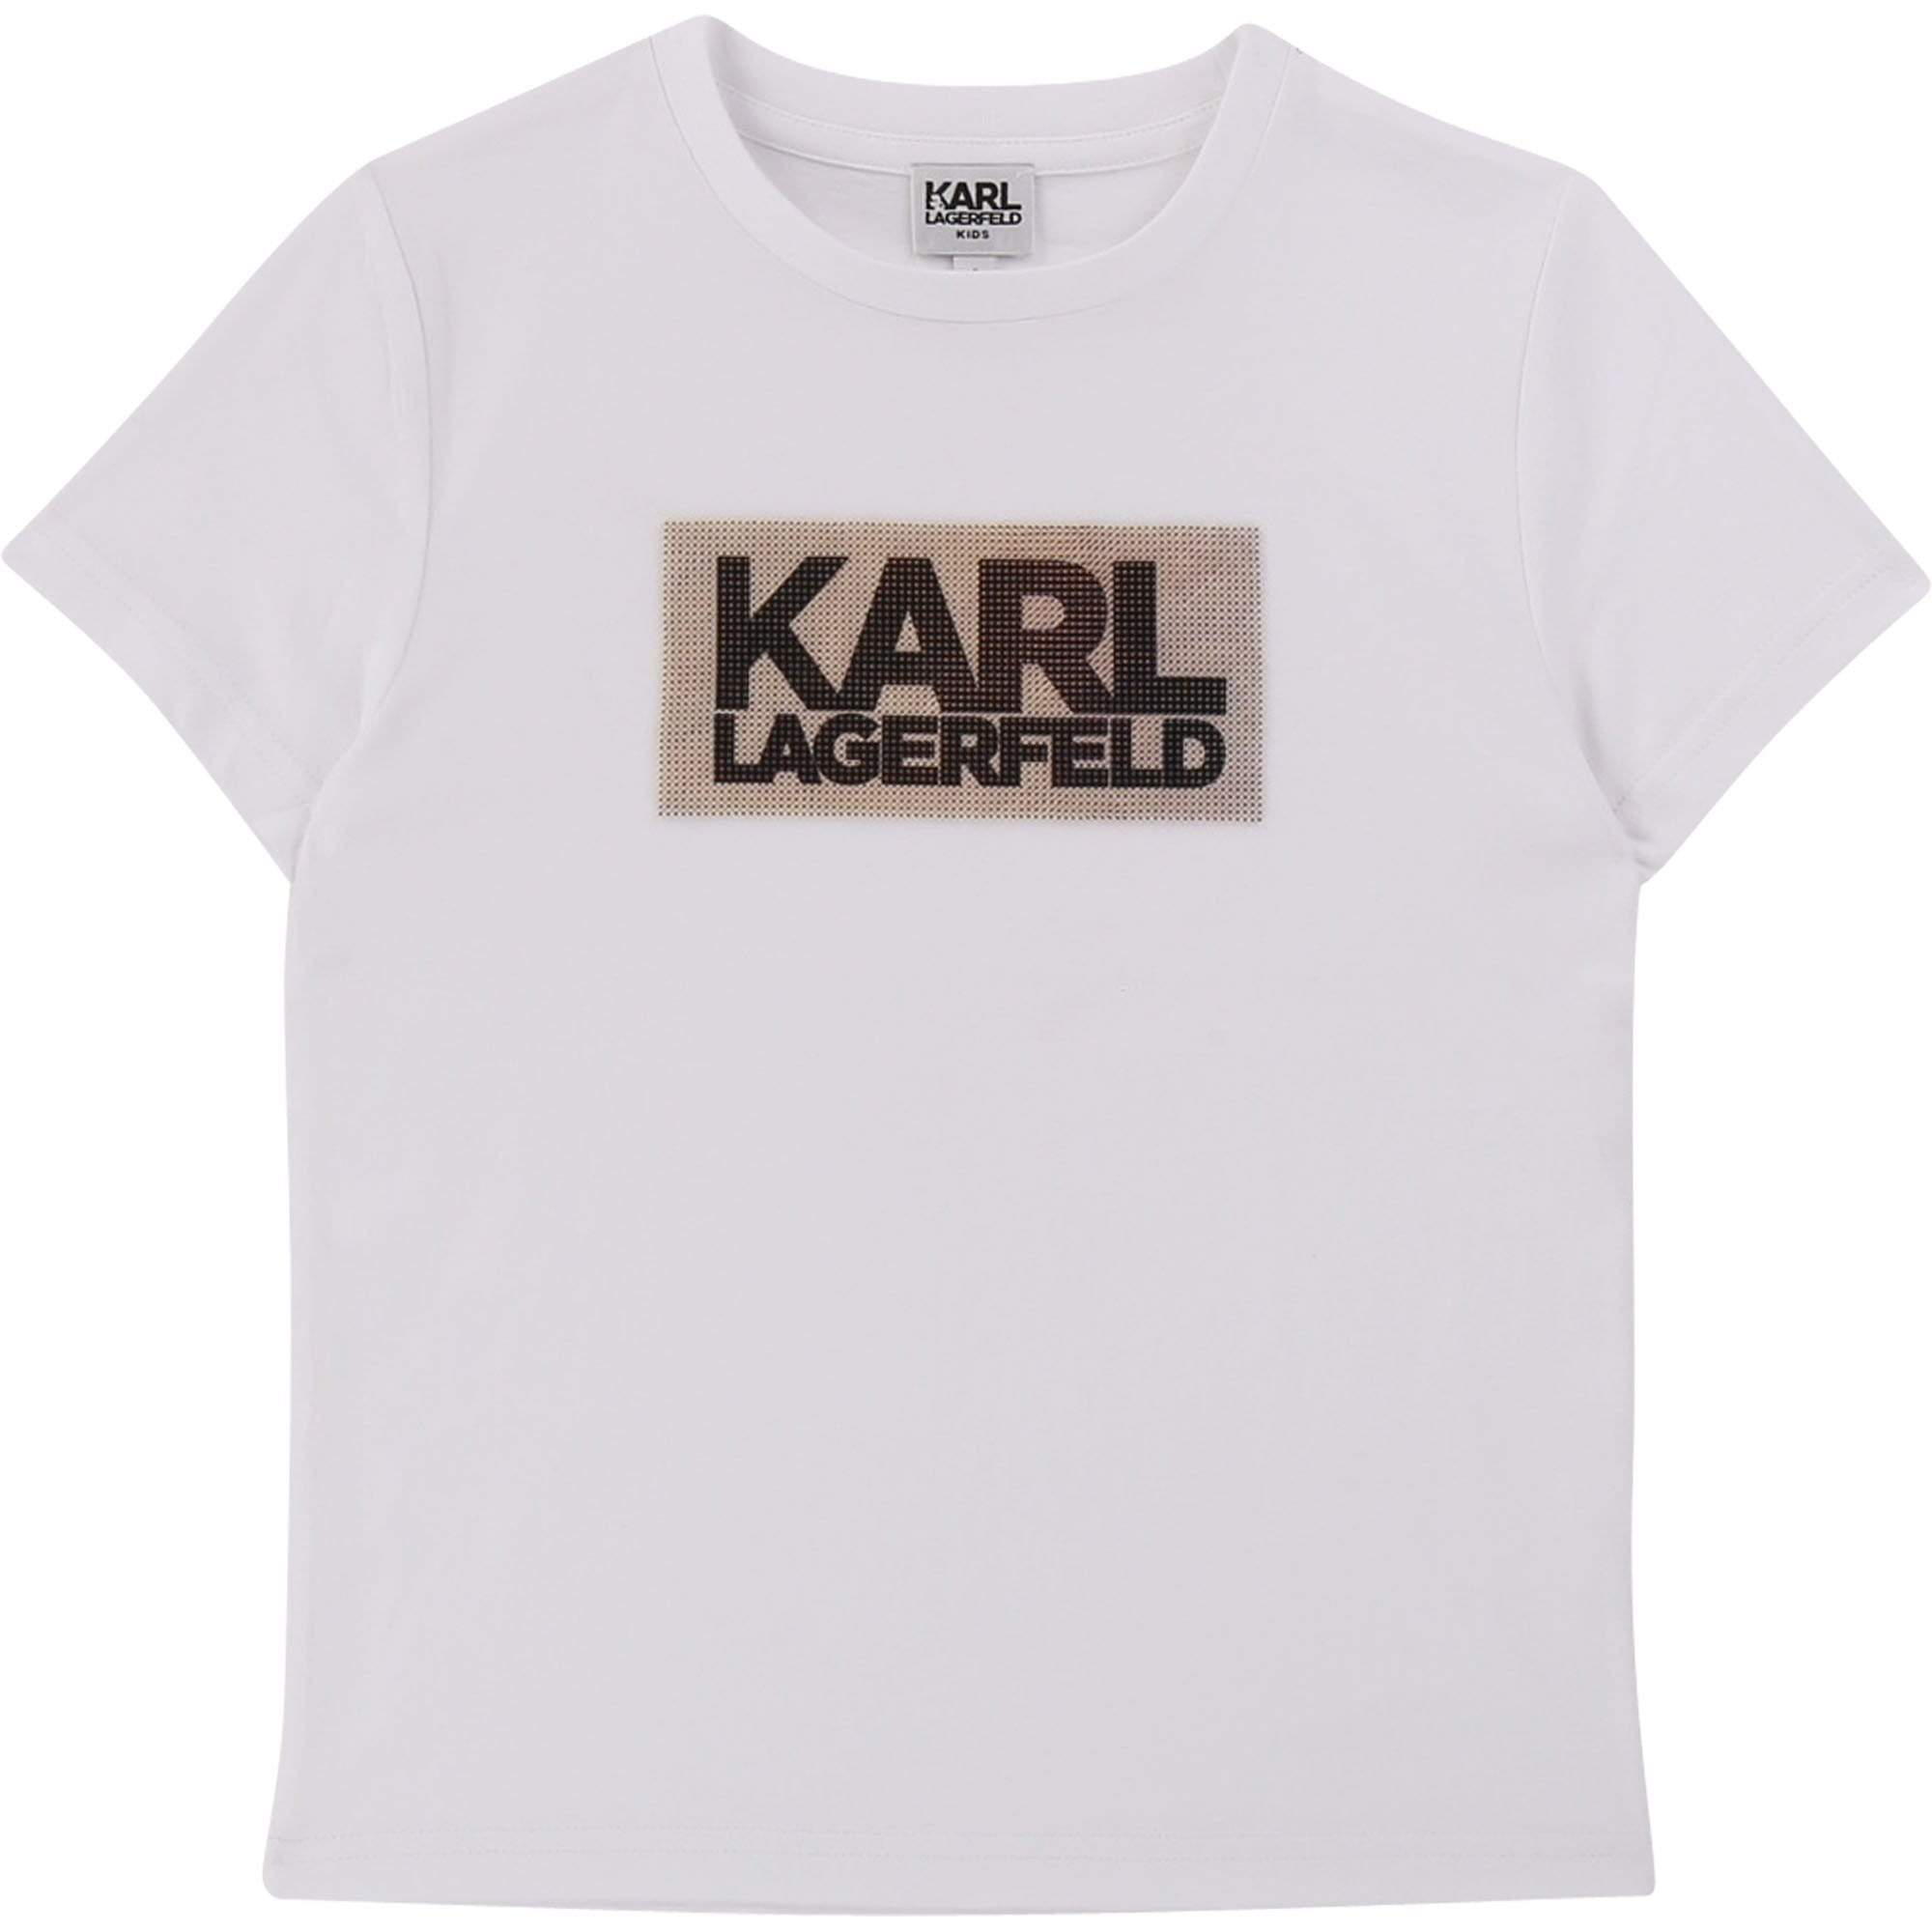 Karl Lagerfeld Chandails T-shirt à imprimé métallique Metallic printed T-shirt